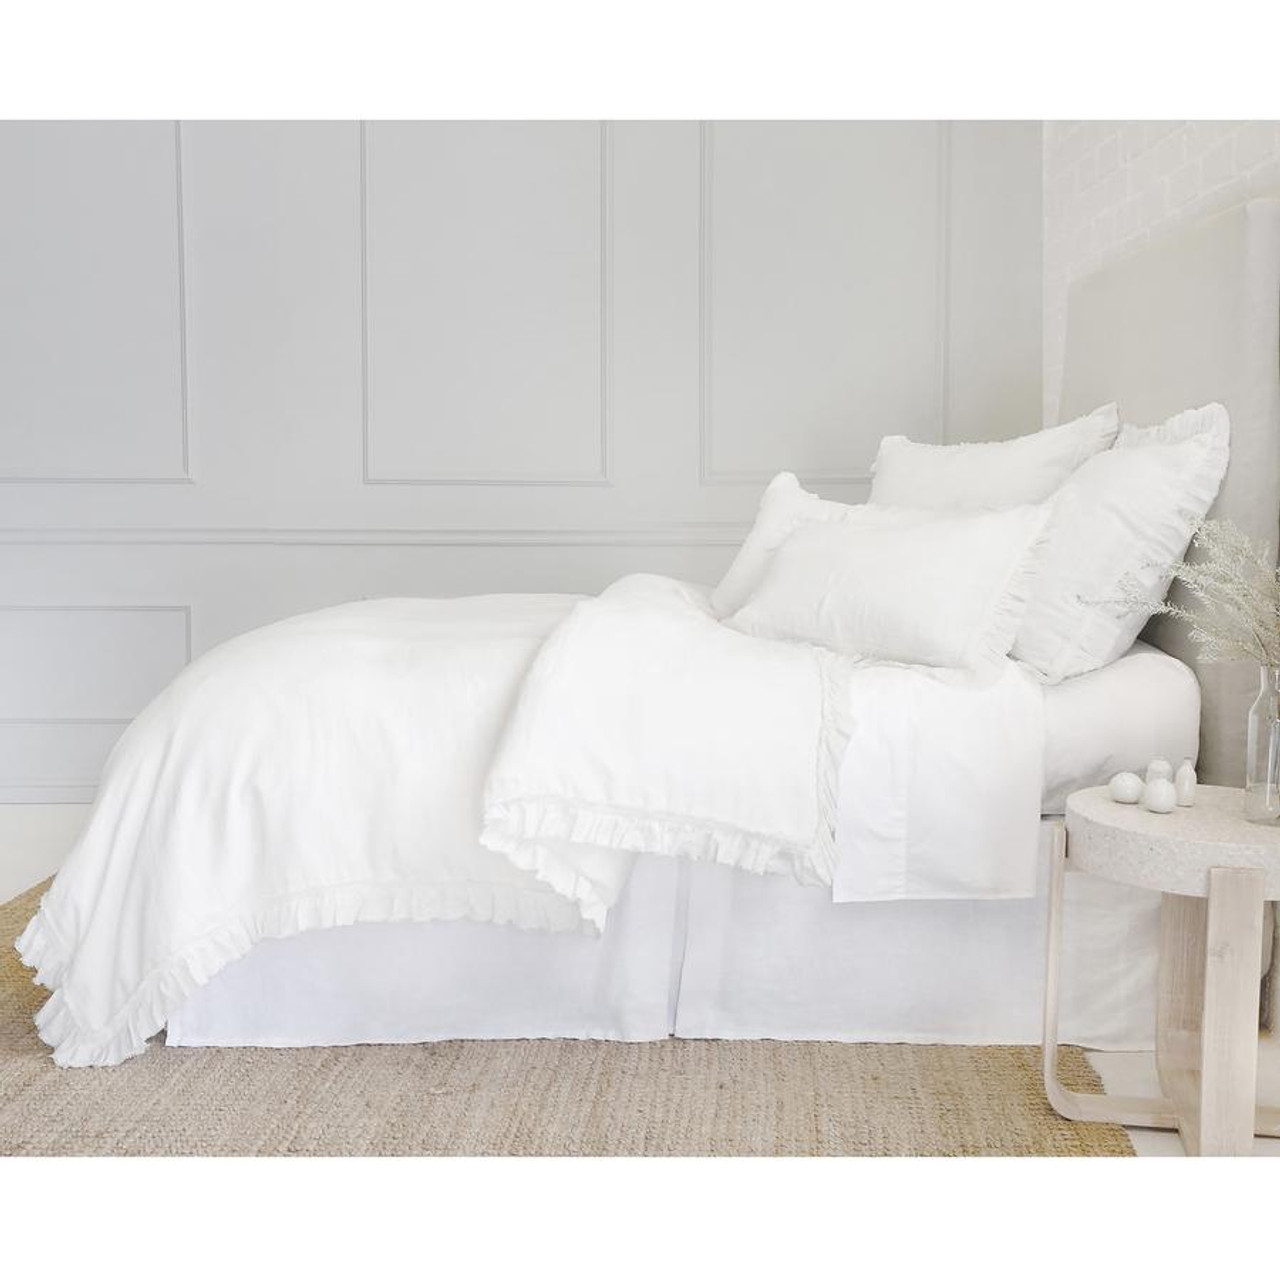 MATHILDE COLLECTION - WHITE